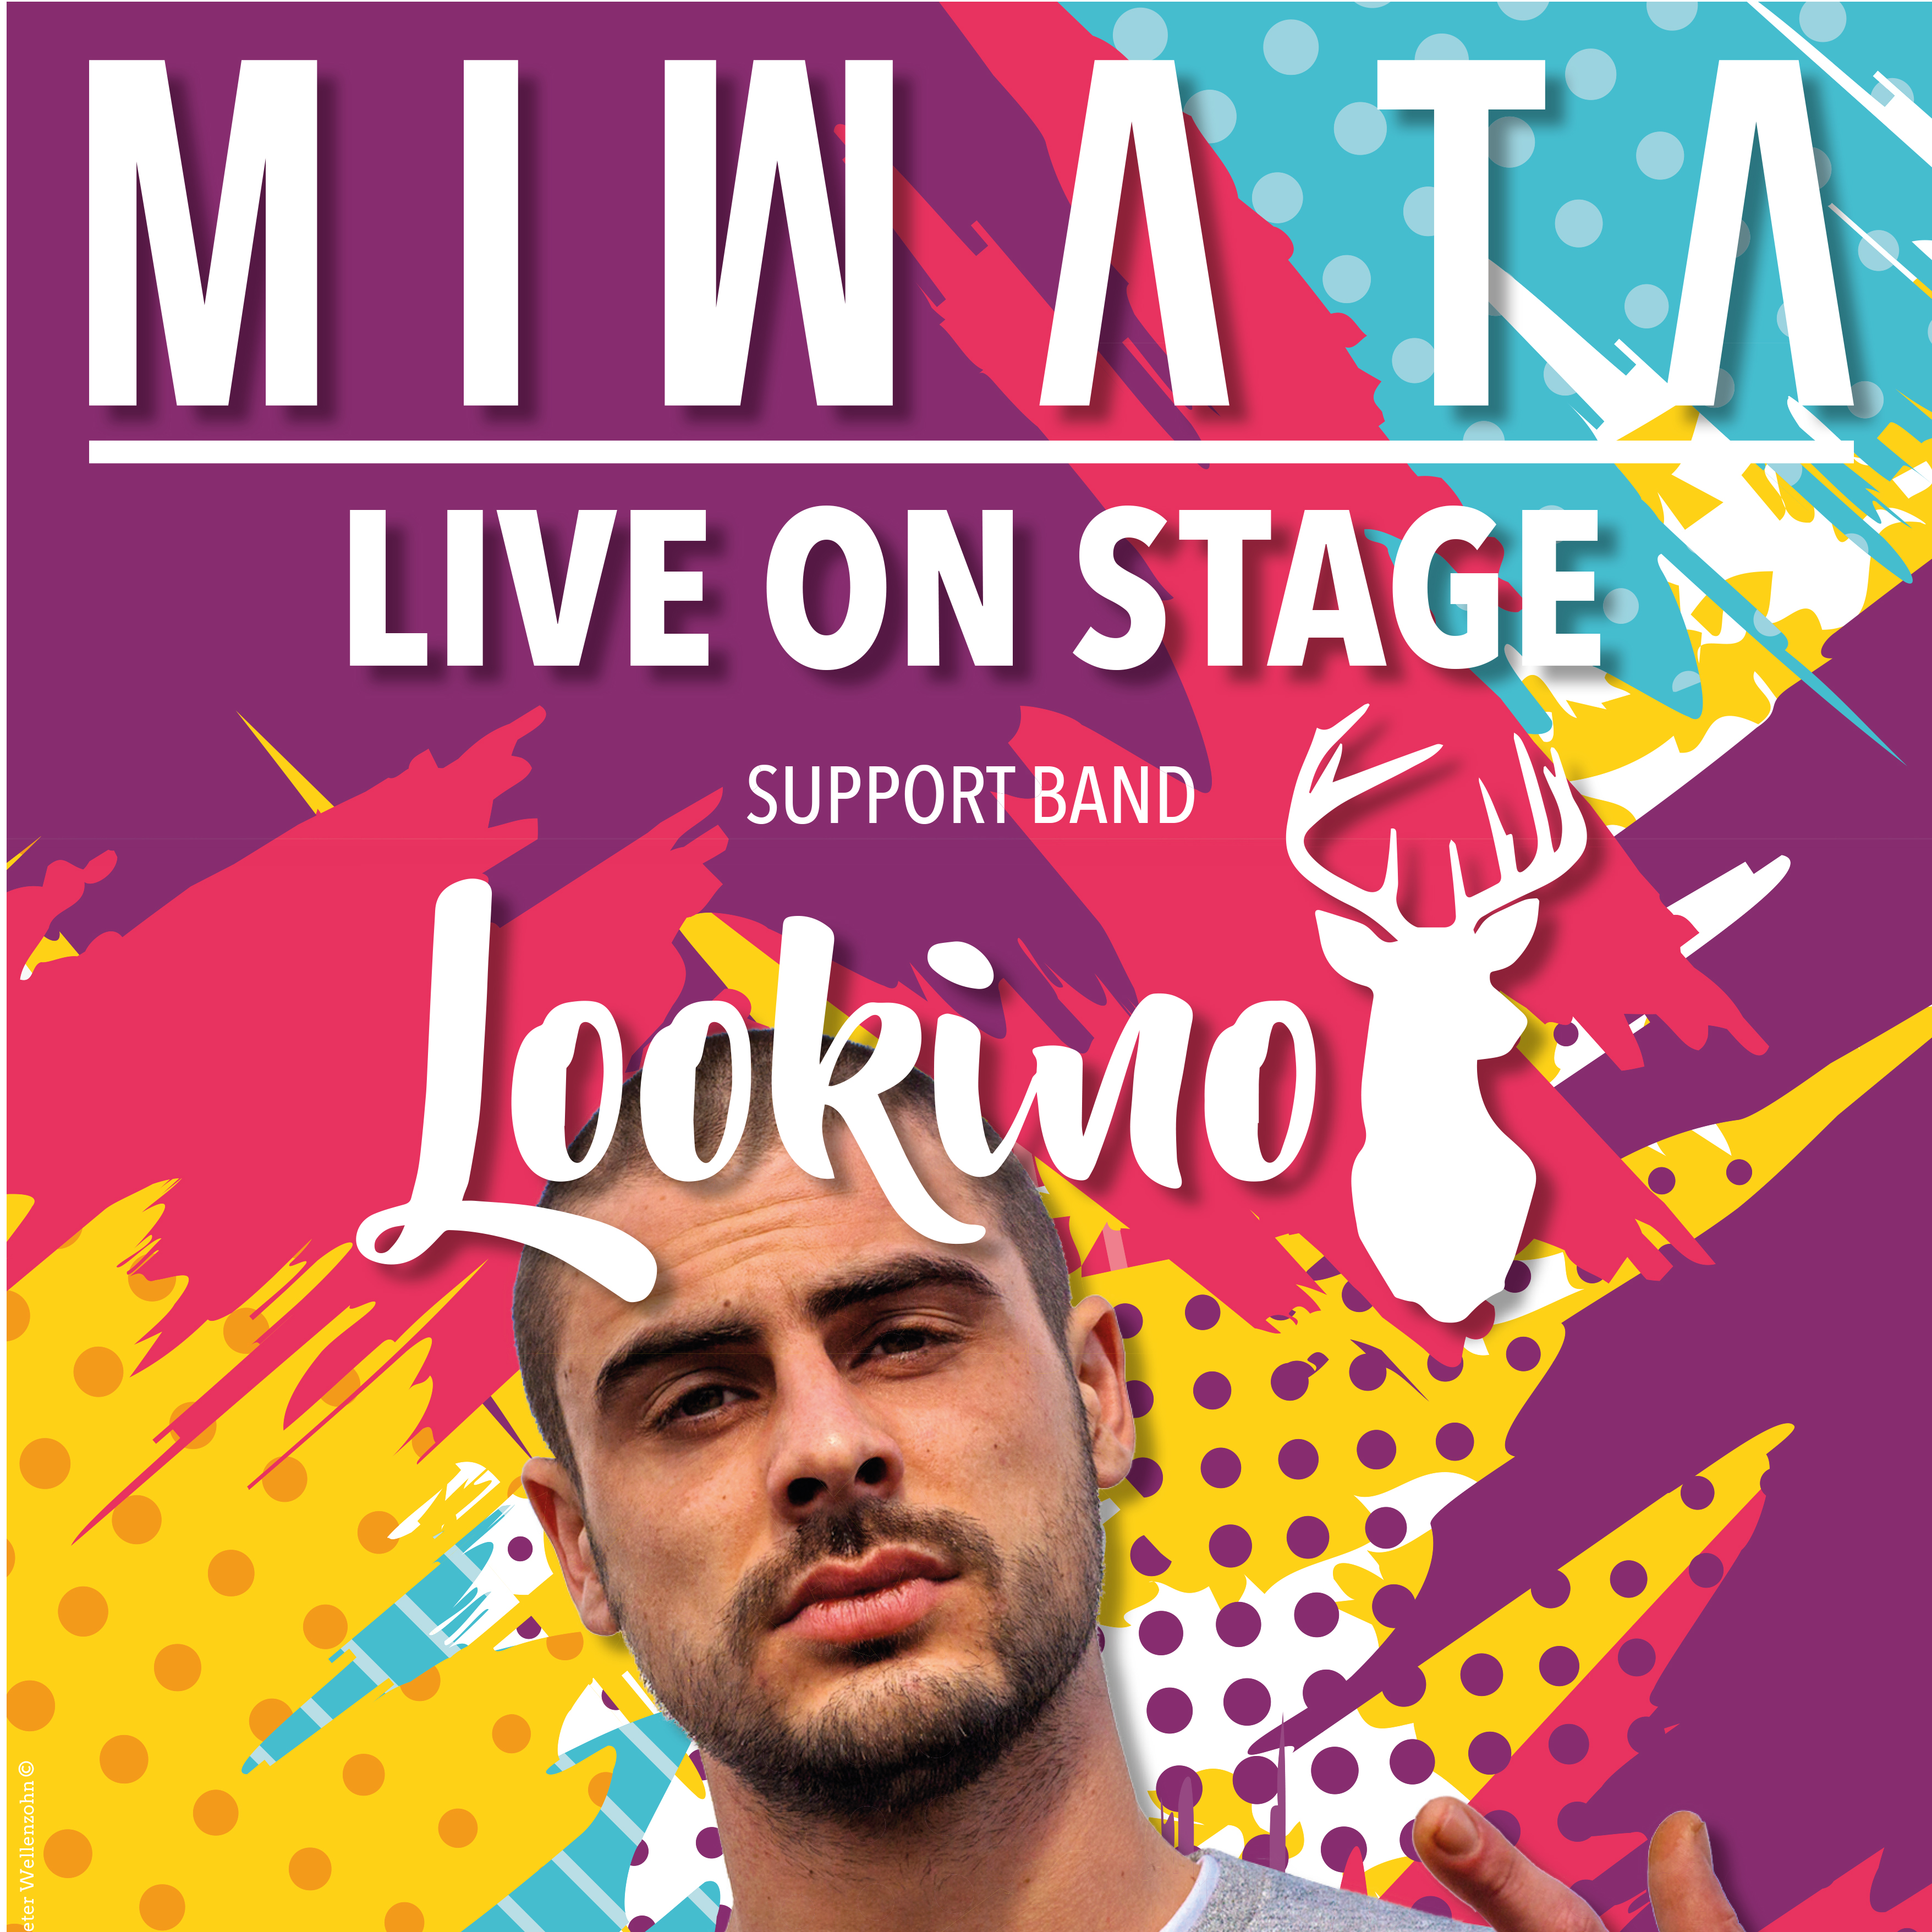 MIWATA – Live on Stage